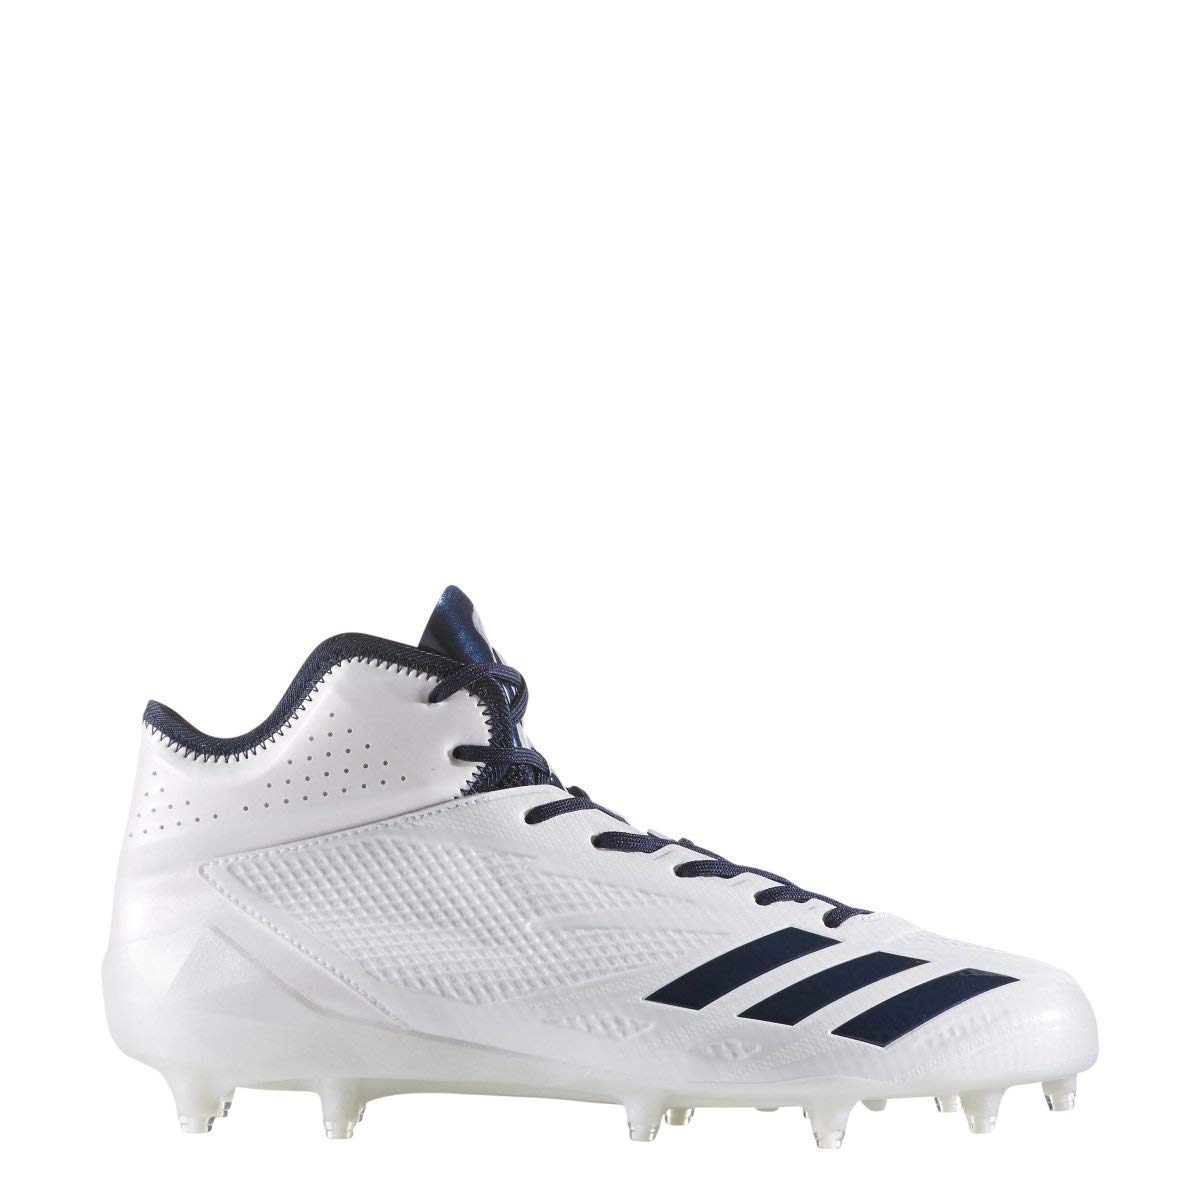 hot sale online ce4f2 ee2e6 Amazon.com  adidas Adizero 5-Star 6.0 Mid Cleat - Mens Football  Football